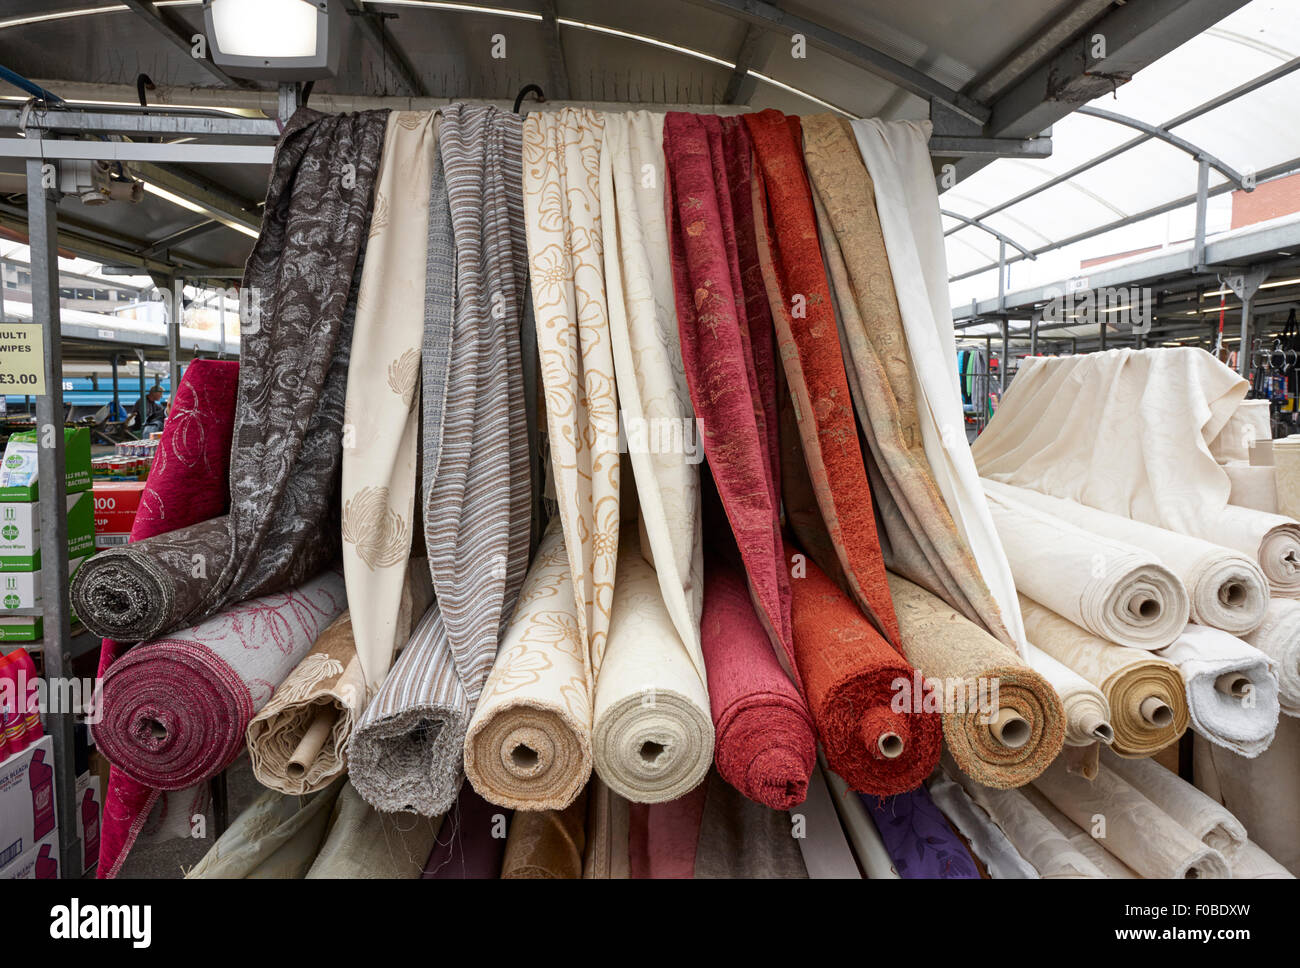 lengths of cloth for sale at an outdoor market Birmingham UK - Stock Image